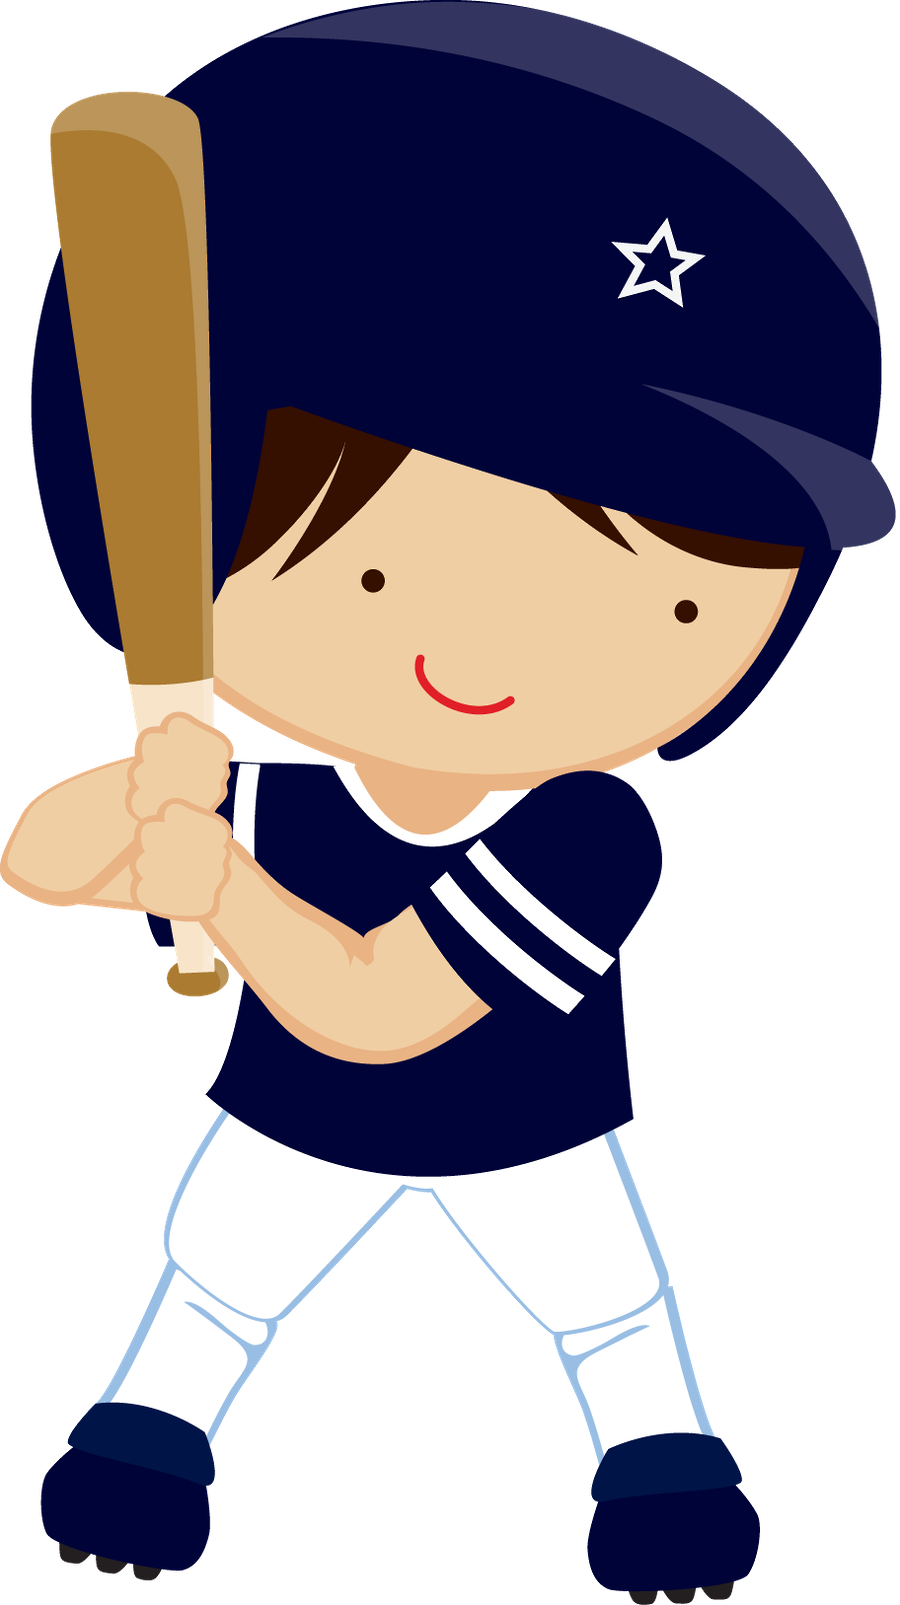 Silver baseball bat clipart free download ZWD_WhiteStar - Minus | alreadyclipart - sports; | Pinterest | Clip ... free download